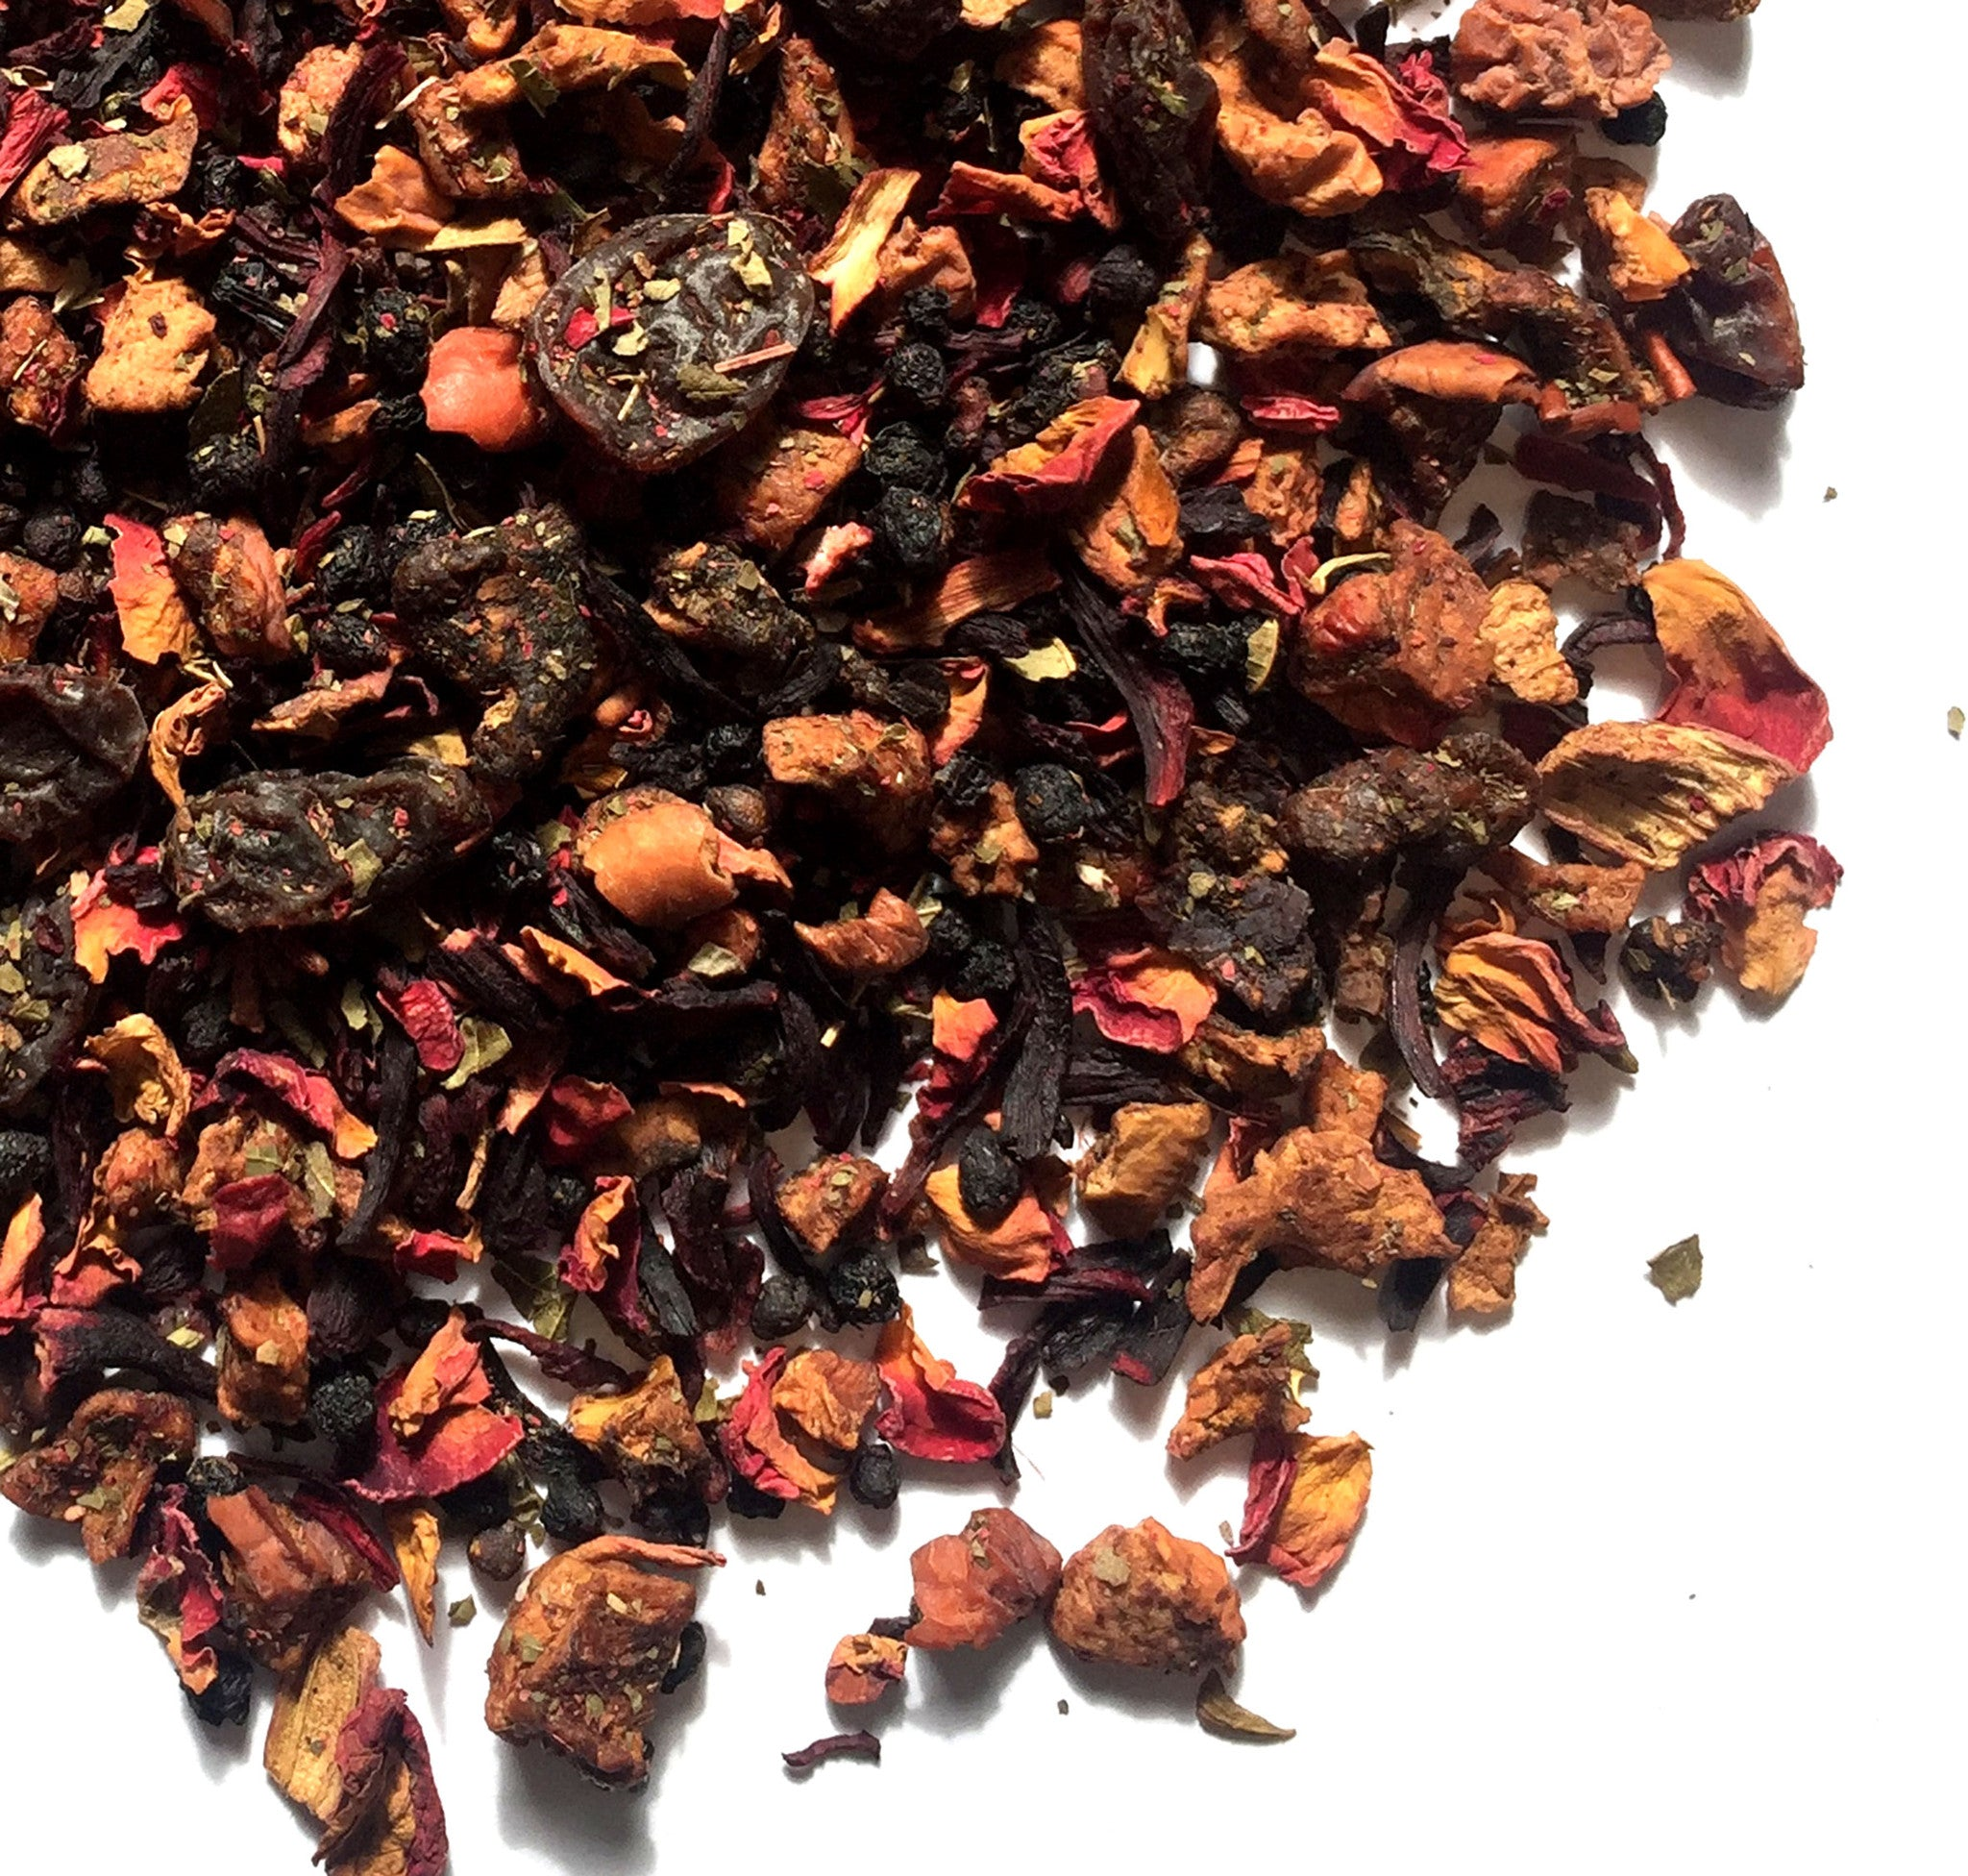 SKINNY GODDESS DETOX TEA - rhubarb, apple and berry detox tea